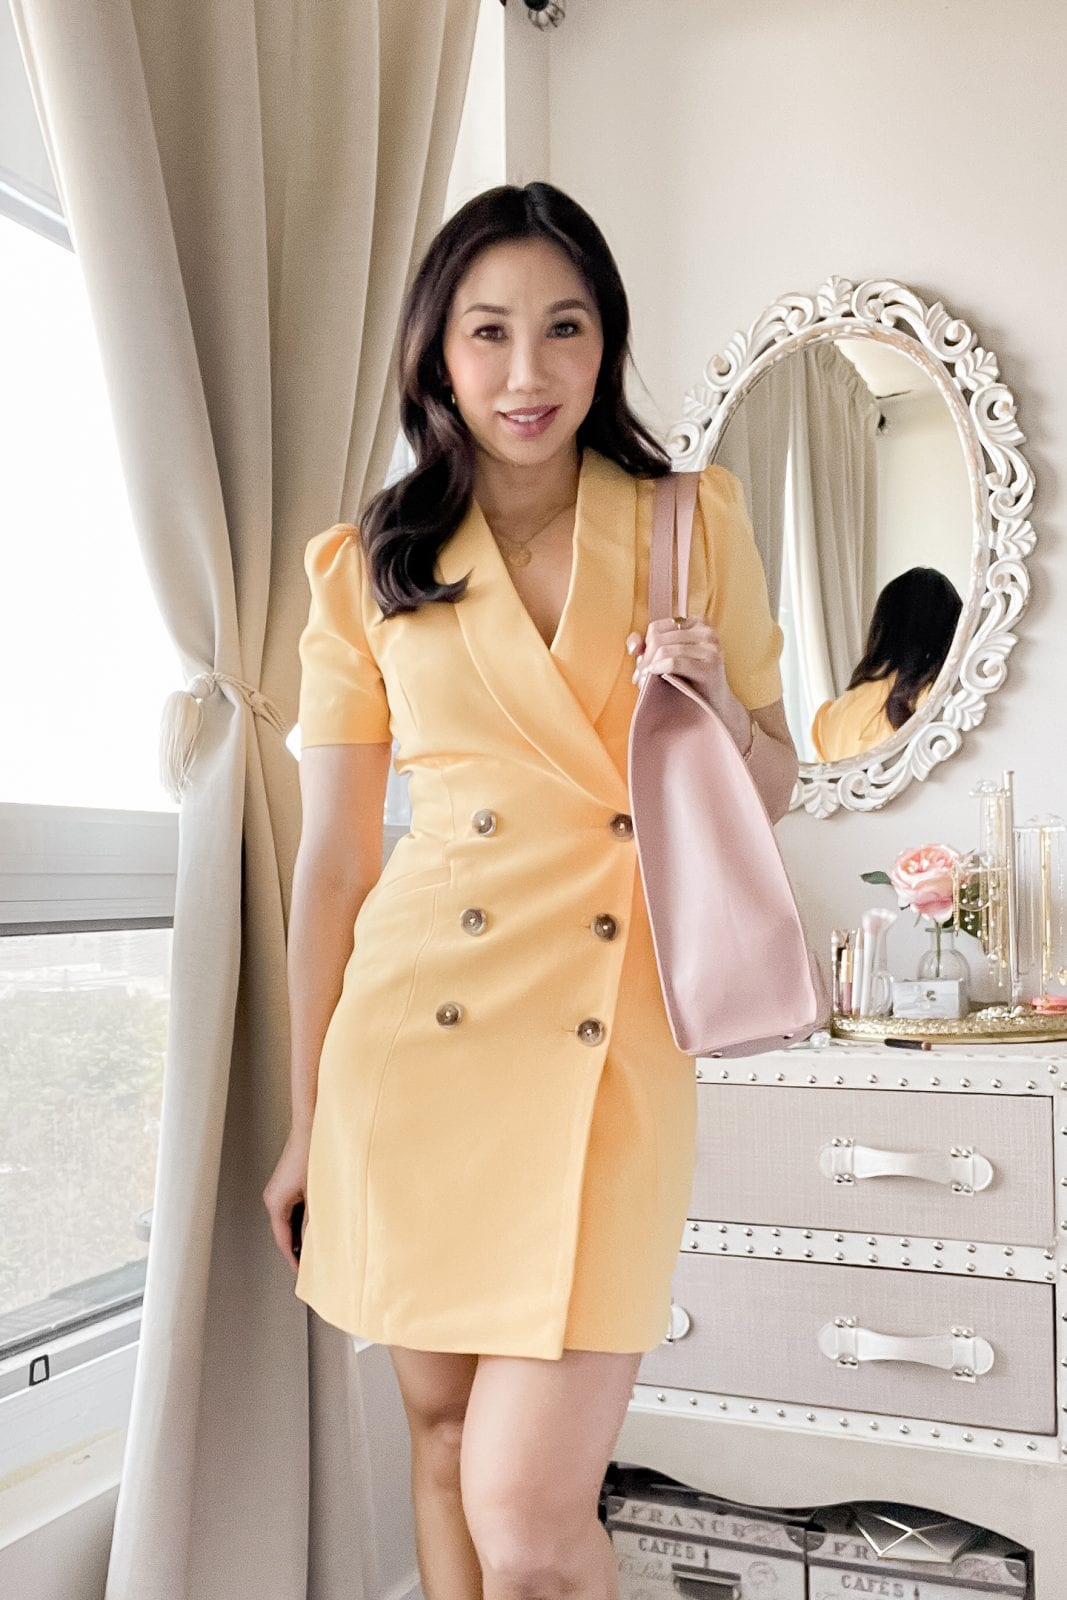 This chic blazer dress will take you from desk to dinner without missing a beat. Find more outfit inspiration at yesmissy.com